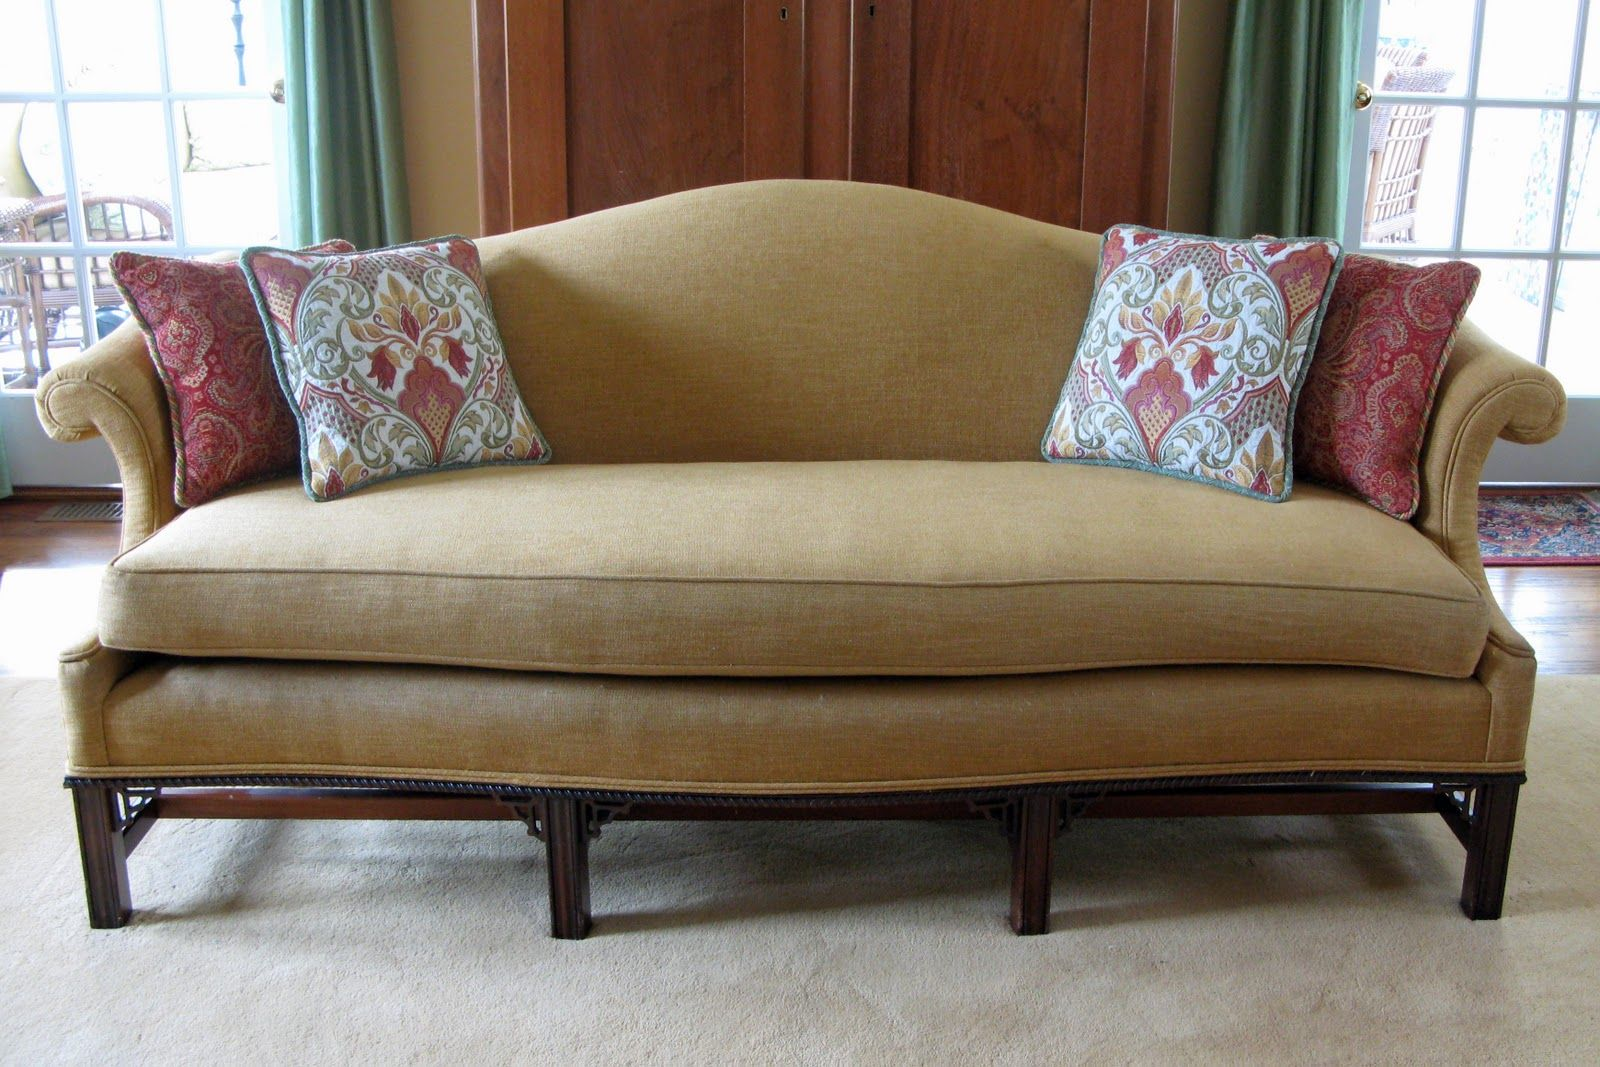 Couch In Living Room. Living Room Furniture Ashley Furniture ...